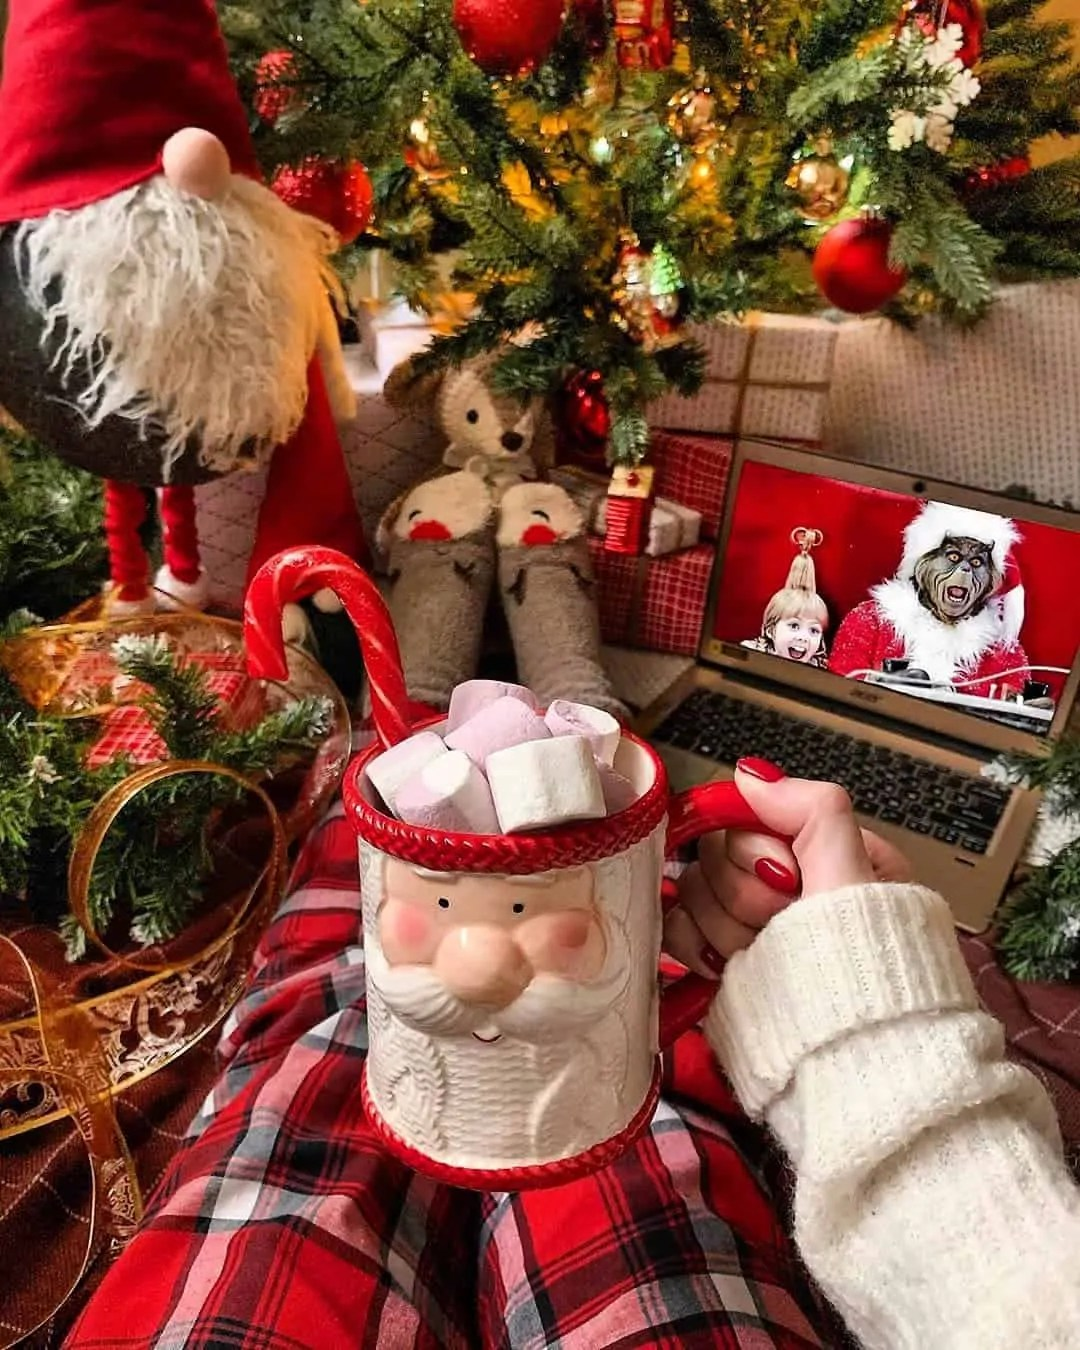 30 Christmas Aesthetic Images you must see: WARNING you will get Christmas mood INSTANTLY! 55